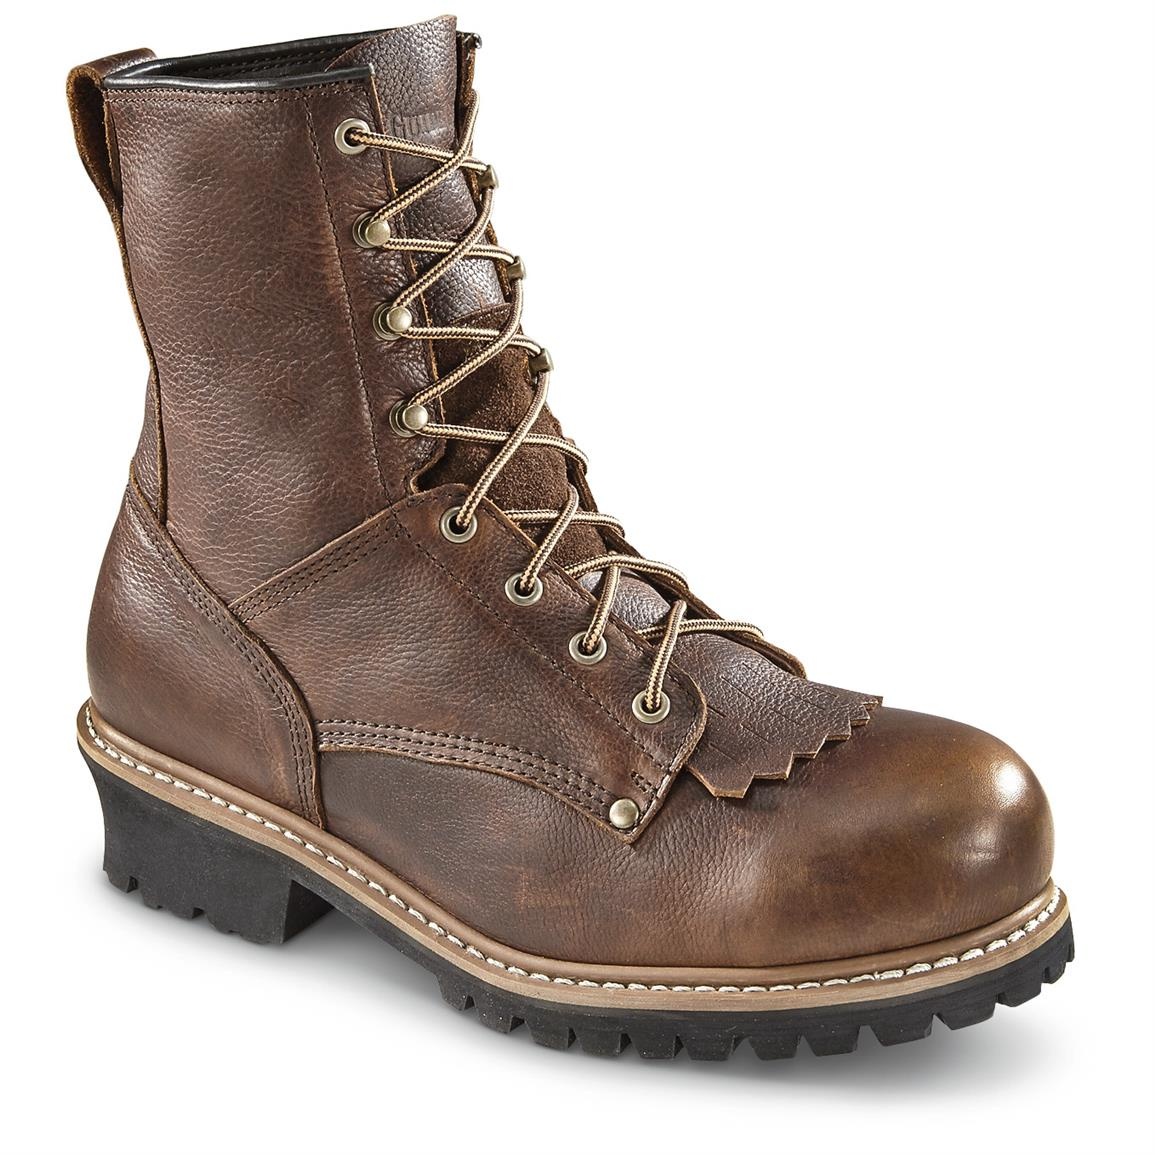 Guide Gear Men's Sawtooth Logger Boots, Steel Toe, Brown